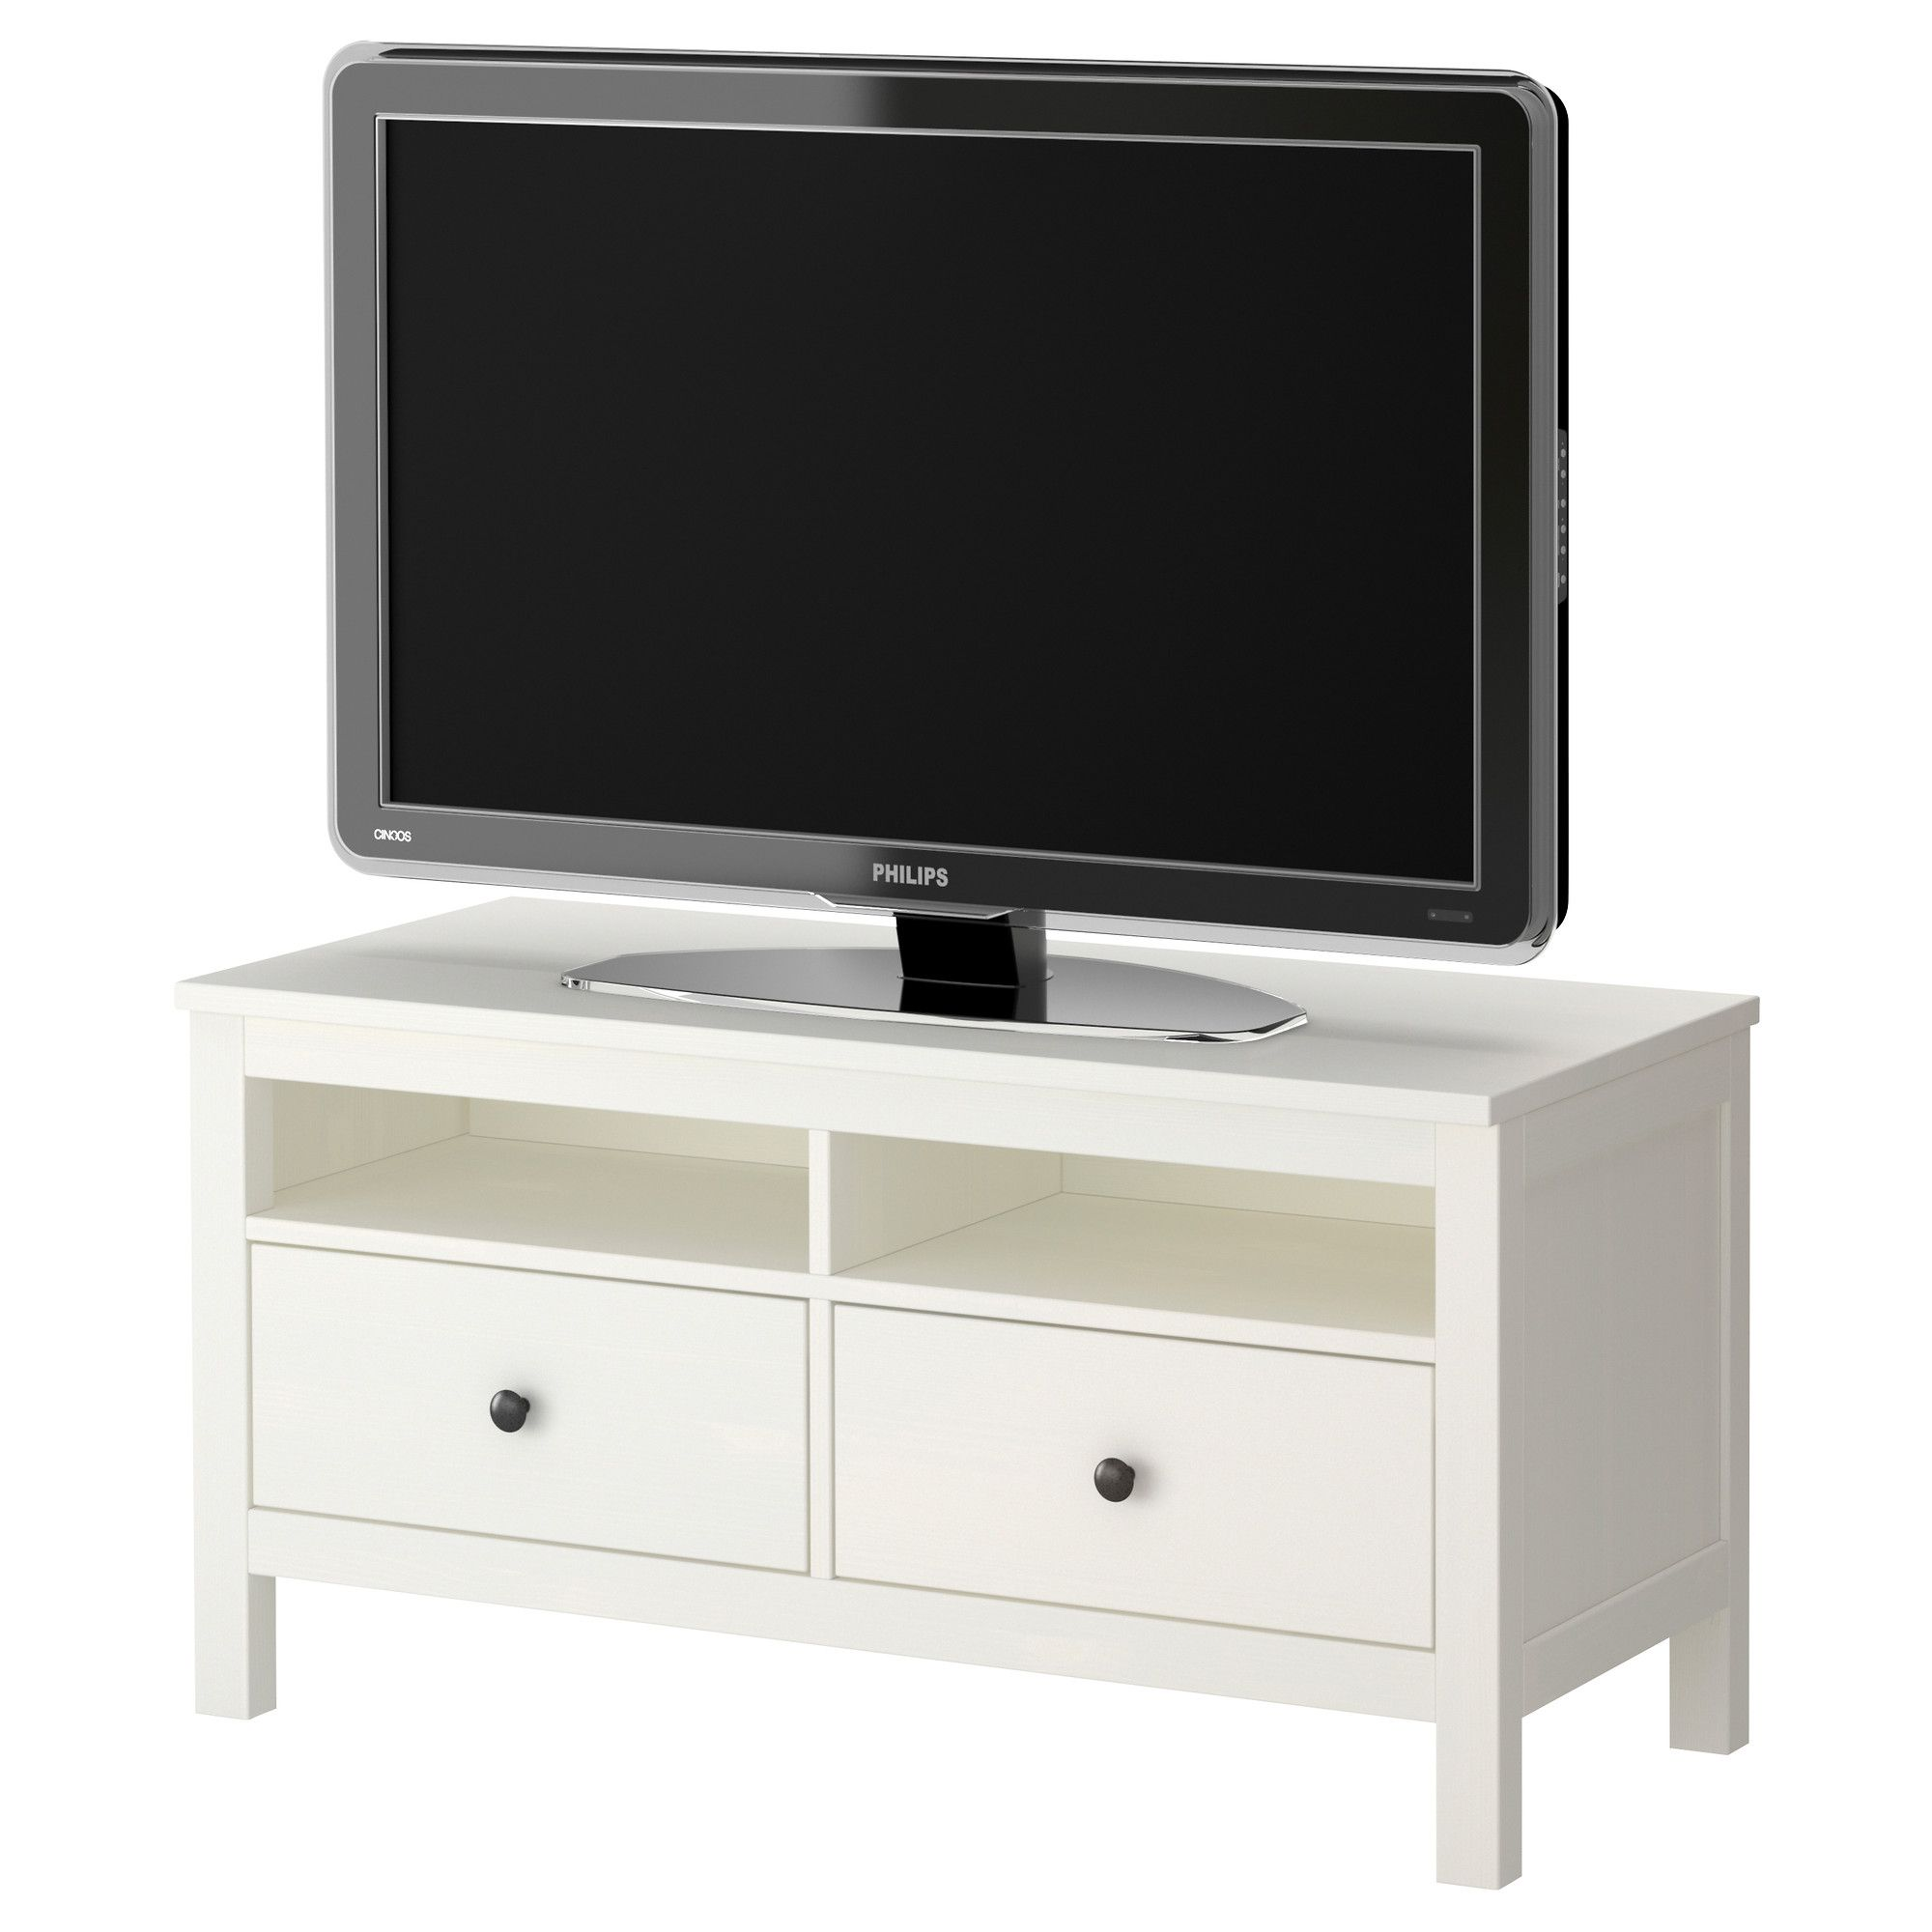 Mueble Tv Blanco Madera Hemnes Mueble Tv Blanco Ikea Ideas Sitges Pinterest